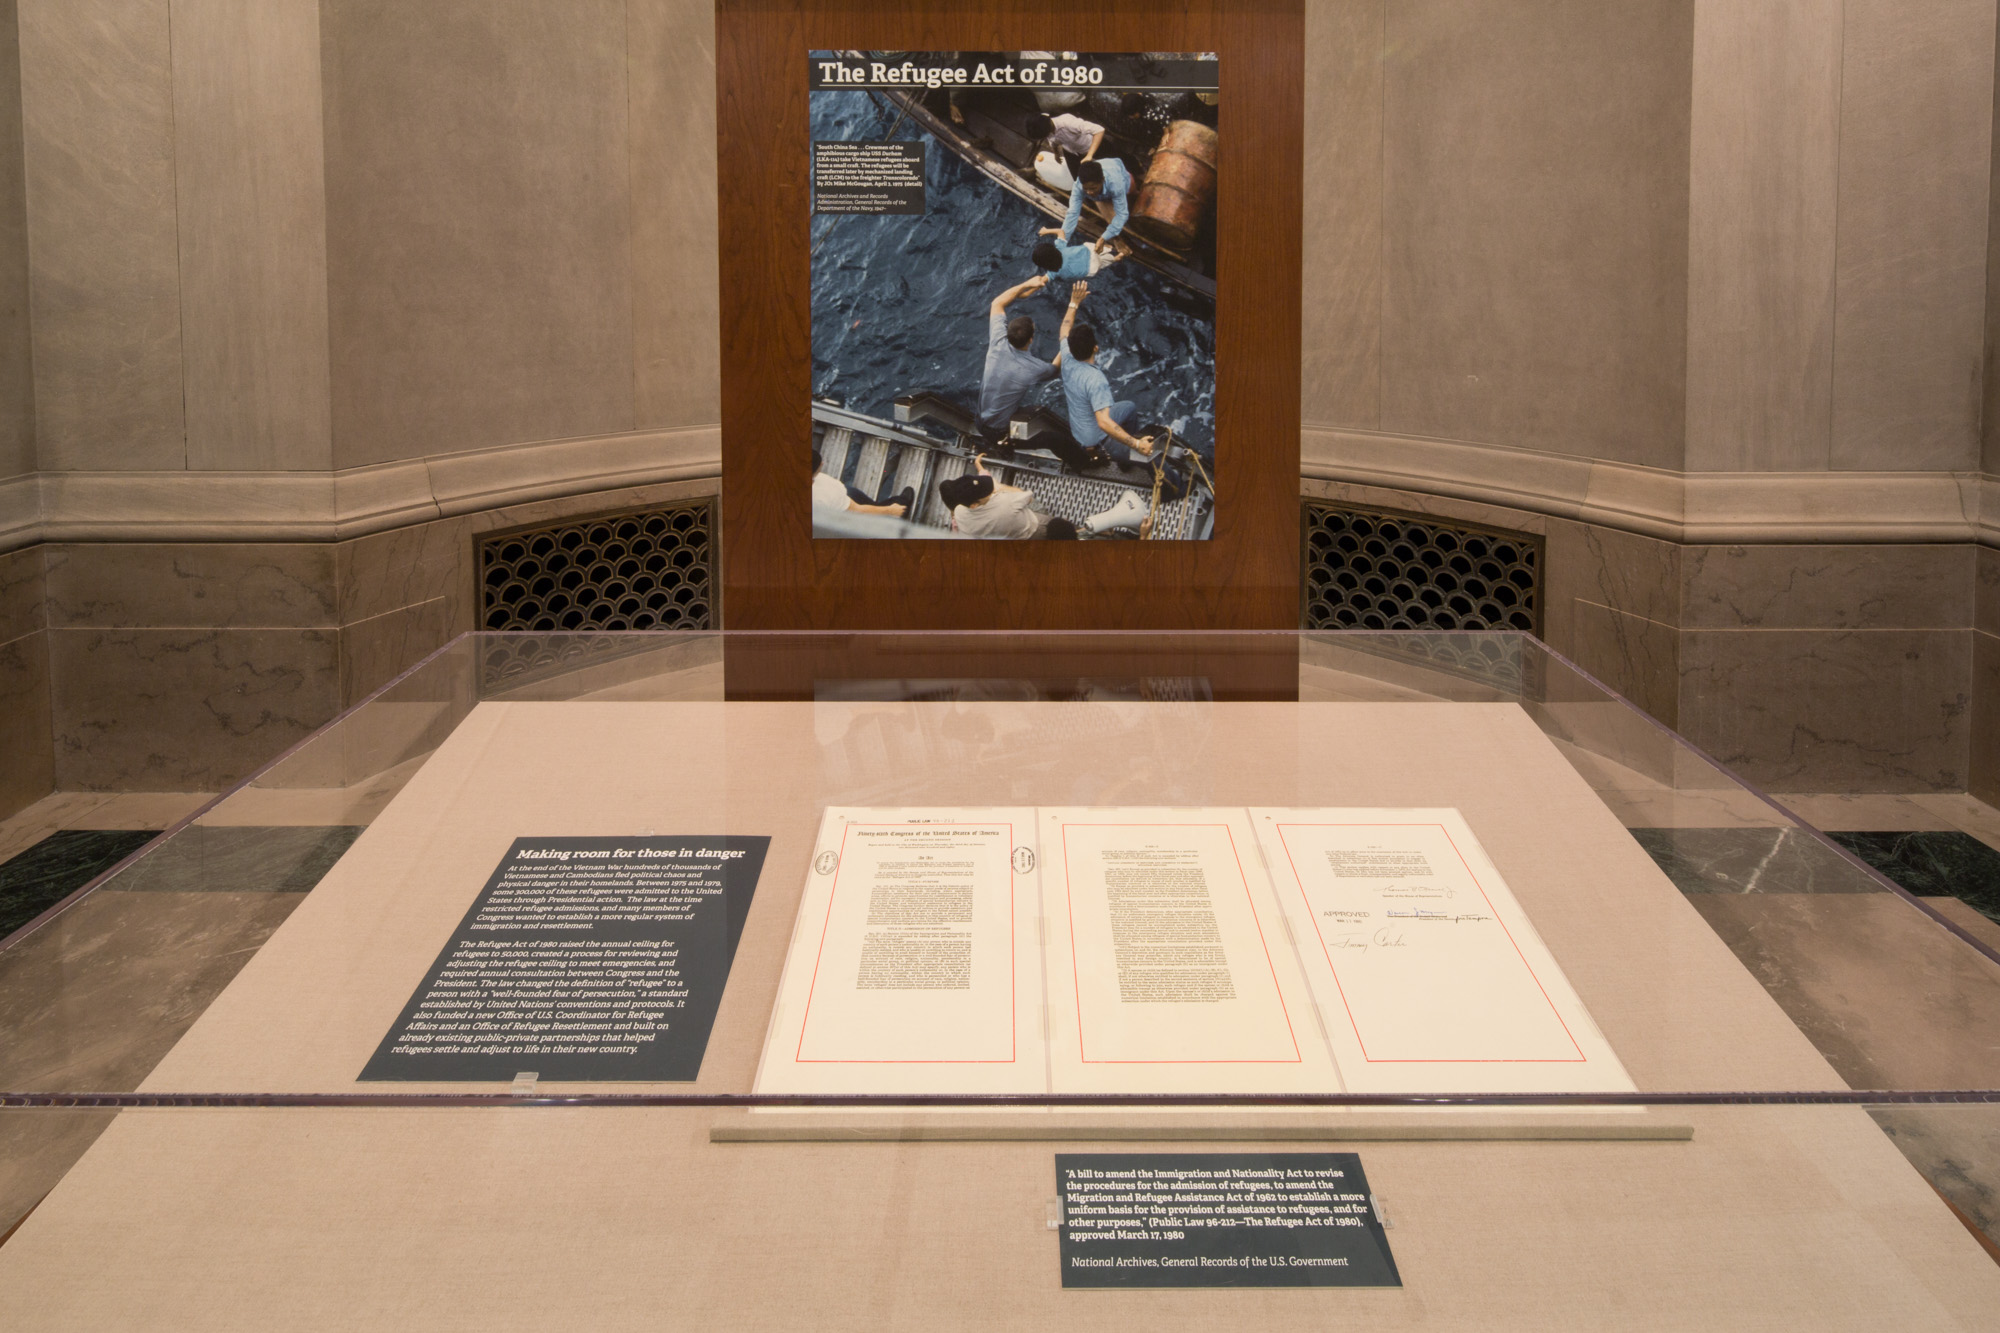 The Refugee Act of 1980 is now on temporary display in the West Gallery of the National Archives Building. Photo by National Archives Photographer Jeffrey Reed.